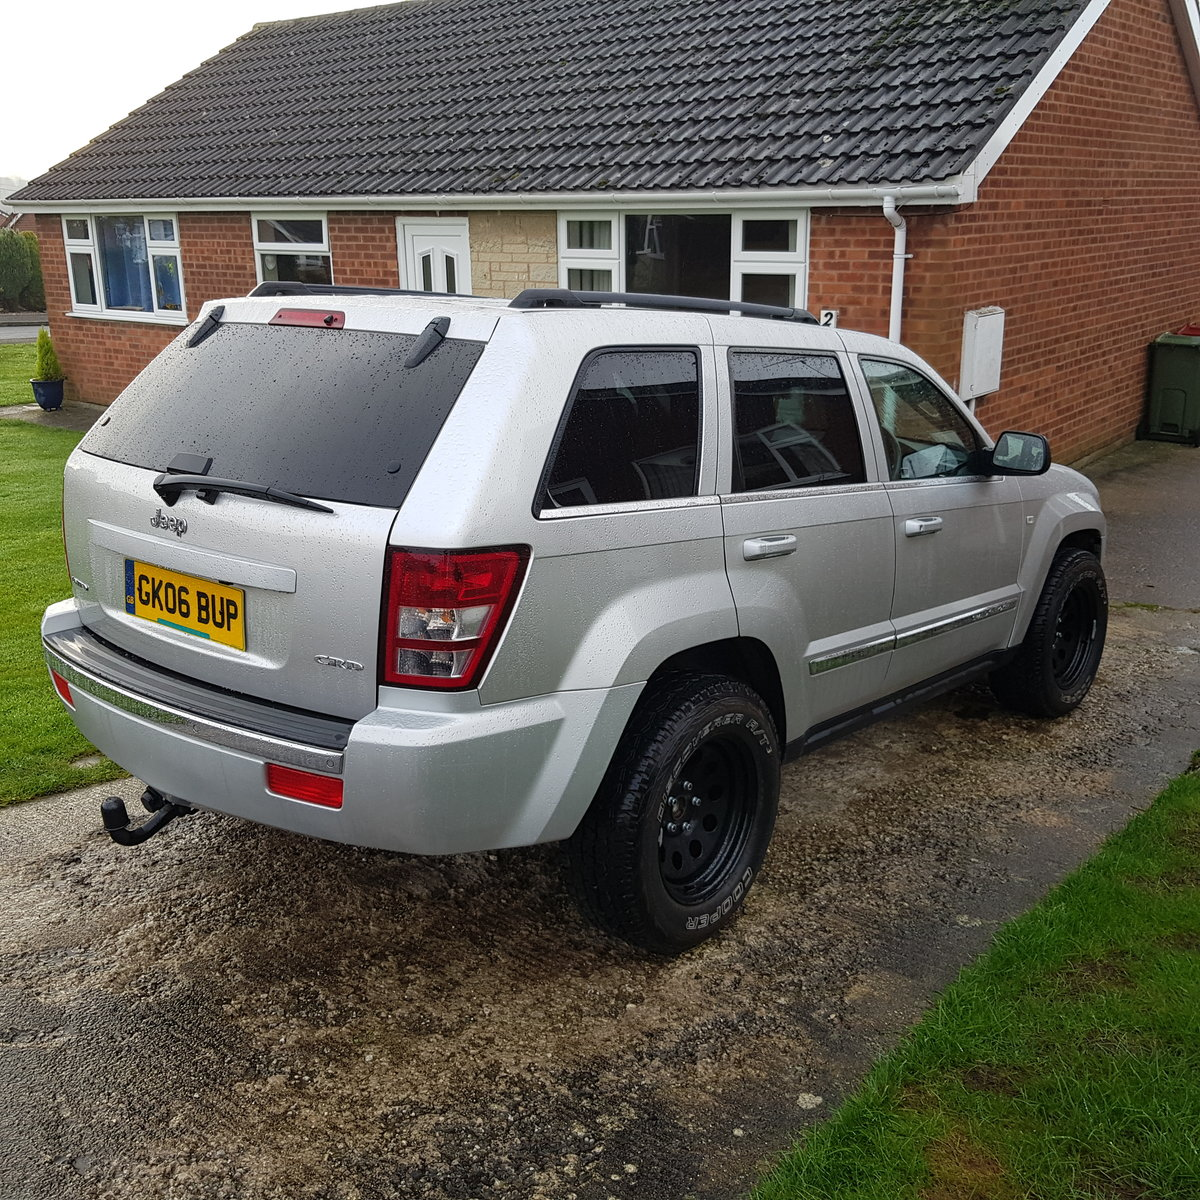 2006 Grand cherokee*new wheels/tyres*long mot*l For Sale (picture 4 of 6)